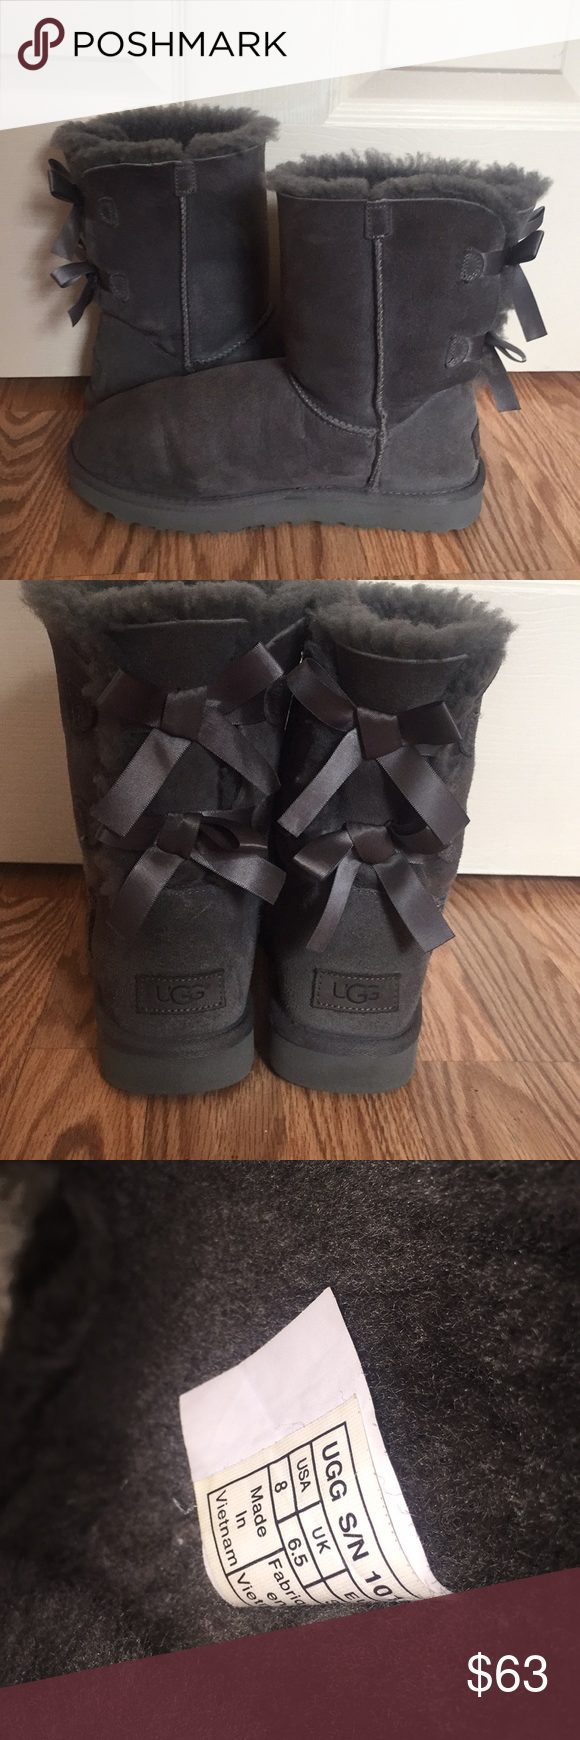 Bailey Bow Uggs Authentic Uggs With Bows Bailey Bow Uggs Uggs